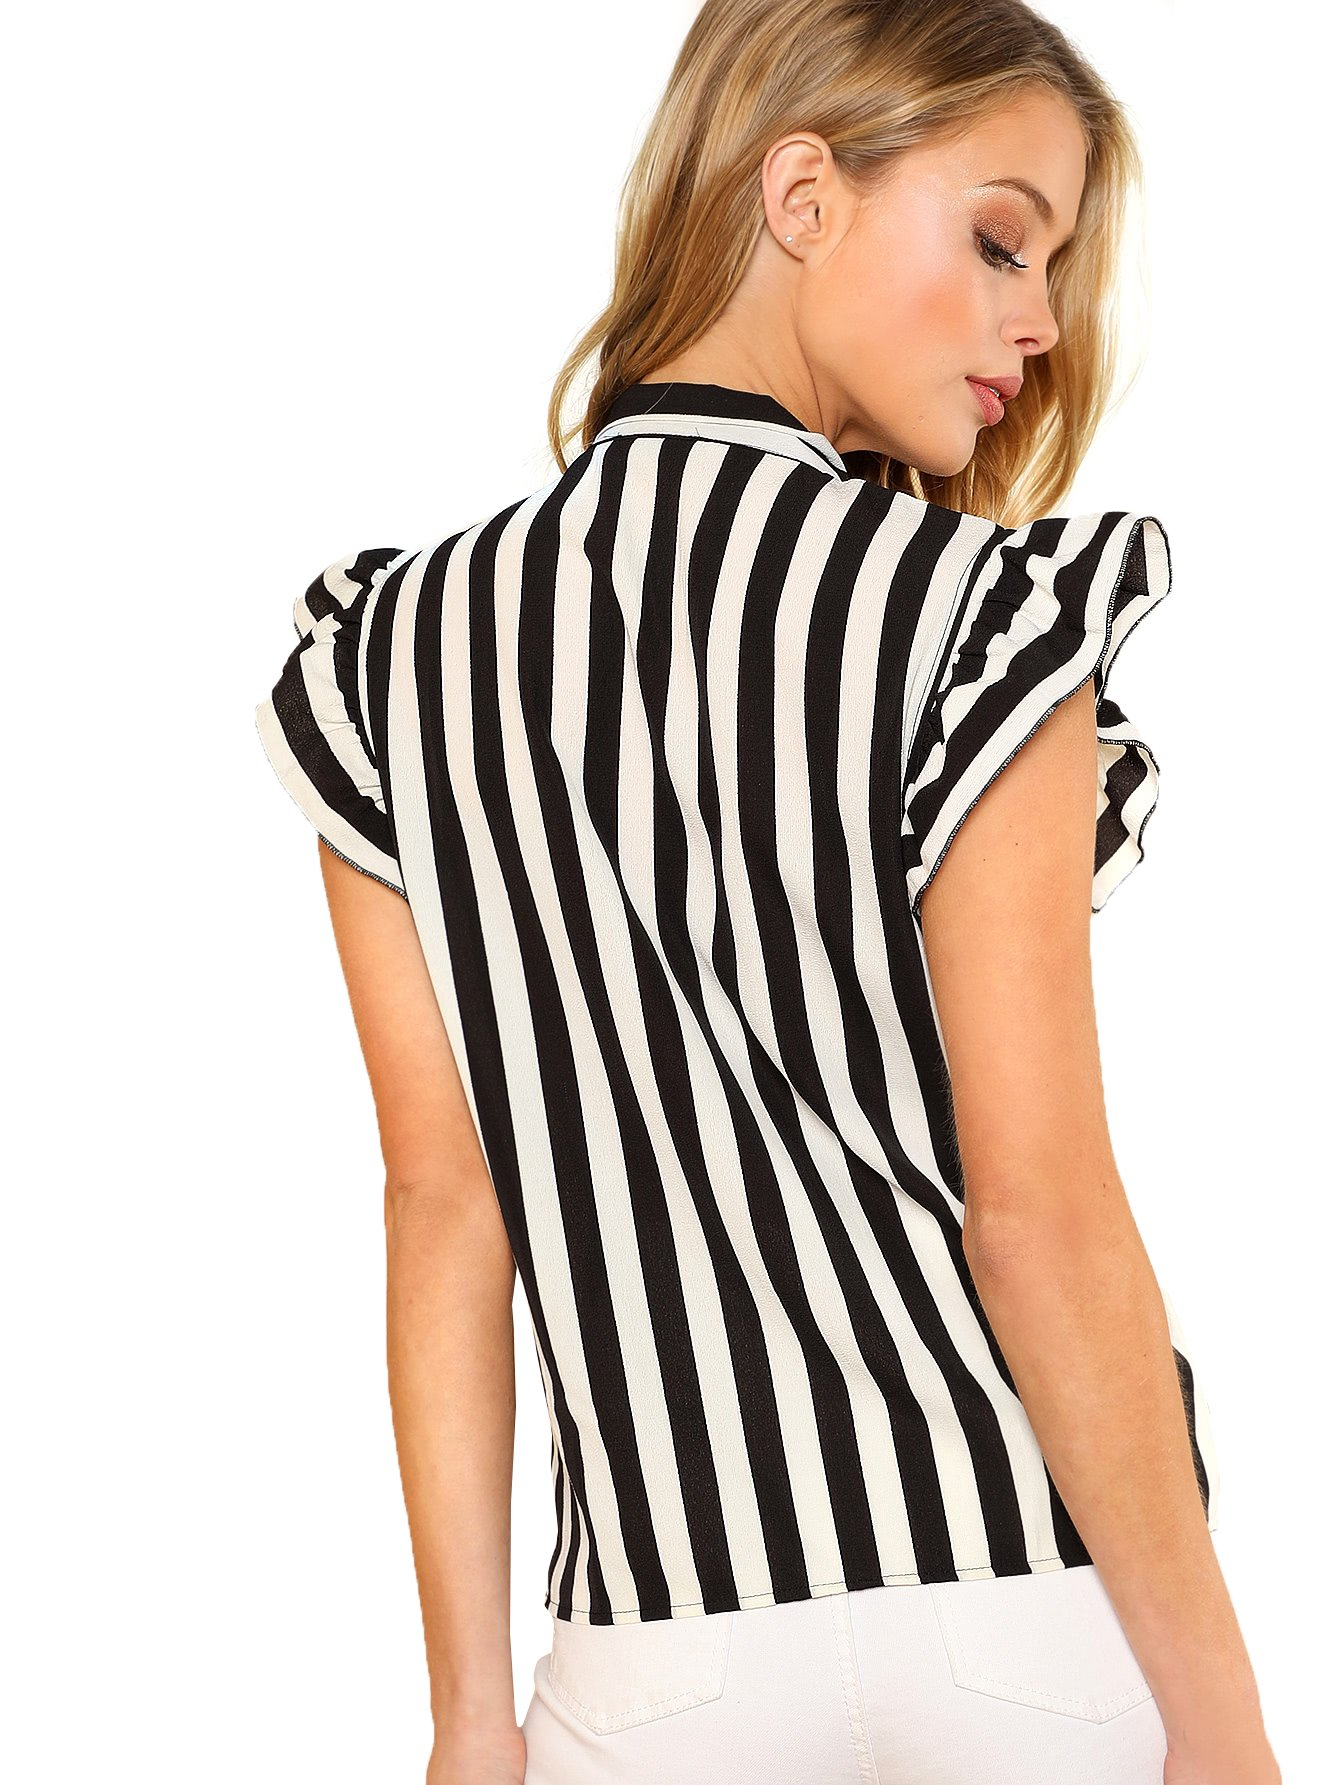 0427b083 Floerns Women's Sleeveless Bow Tie Striped Summer Chiffon Blouse Top <  Blouses & Button-Down Shirts < Clothing, Shoes & Jewelry - tibs